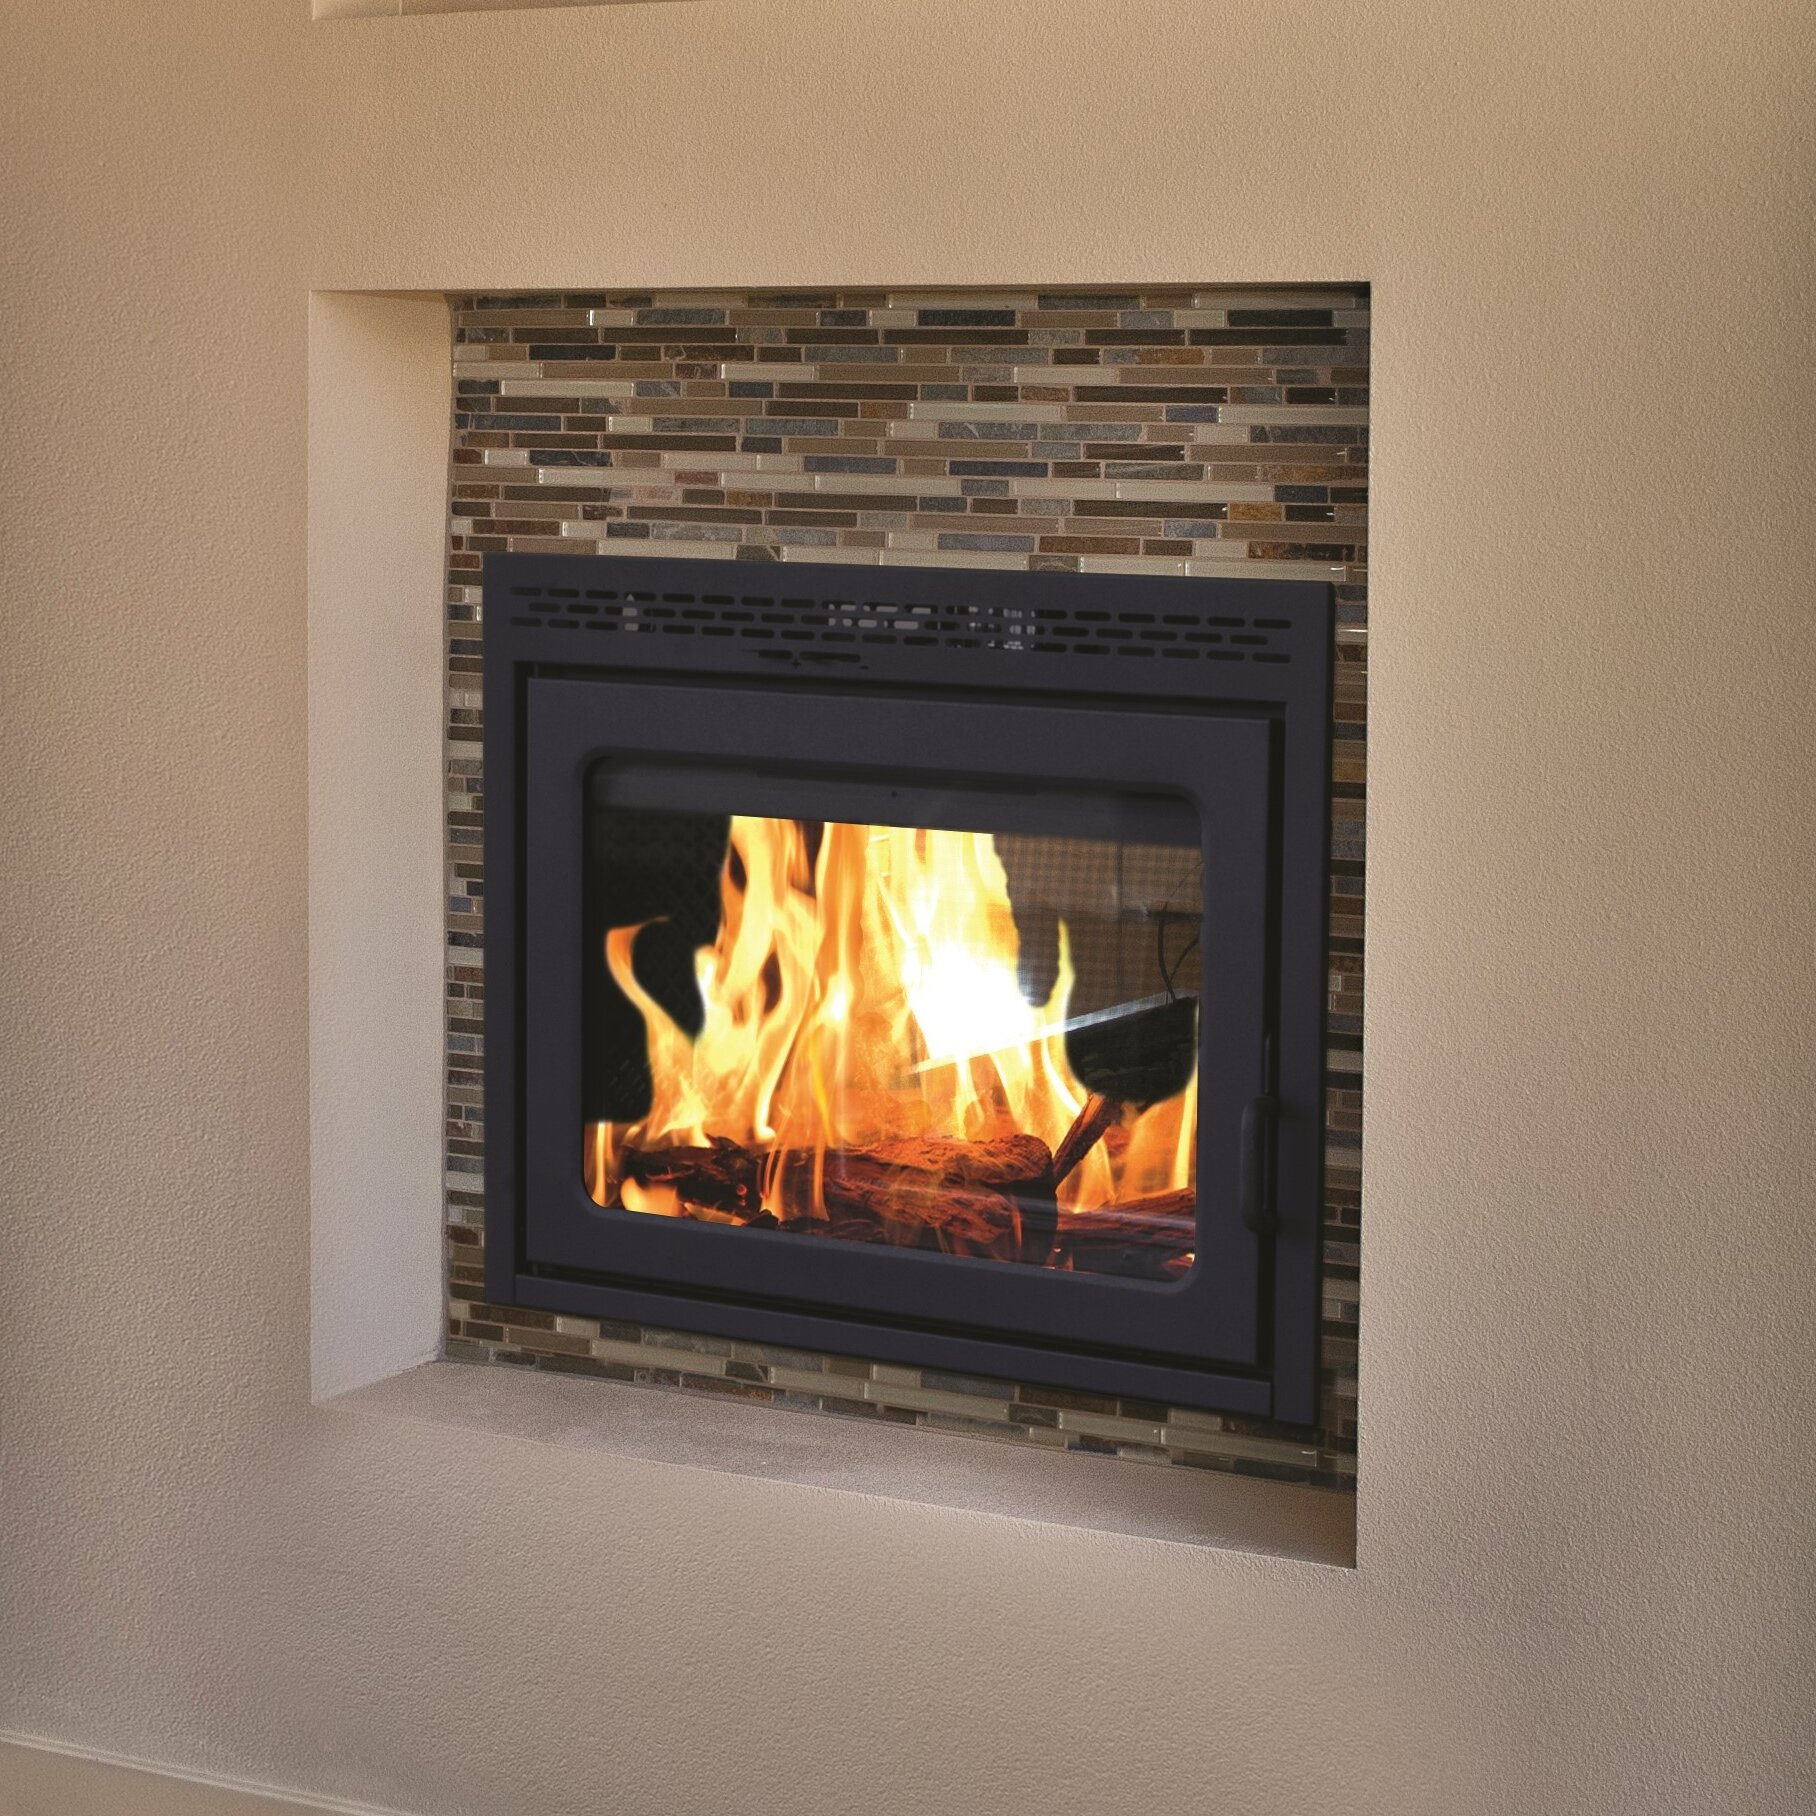 Supreme fireplaces inc duet see through fireplace wayfair for See thru fireplaces